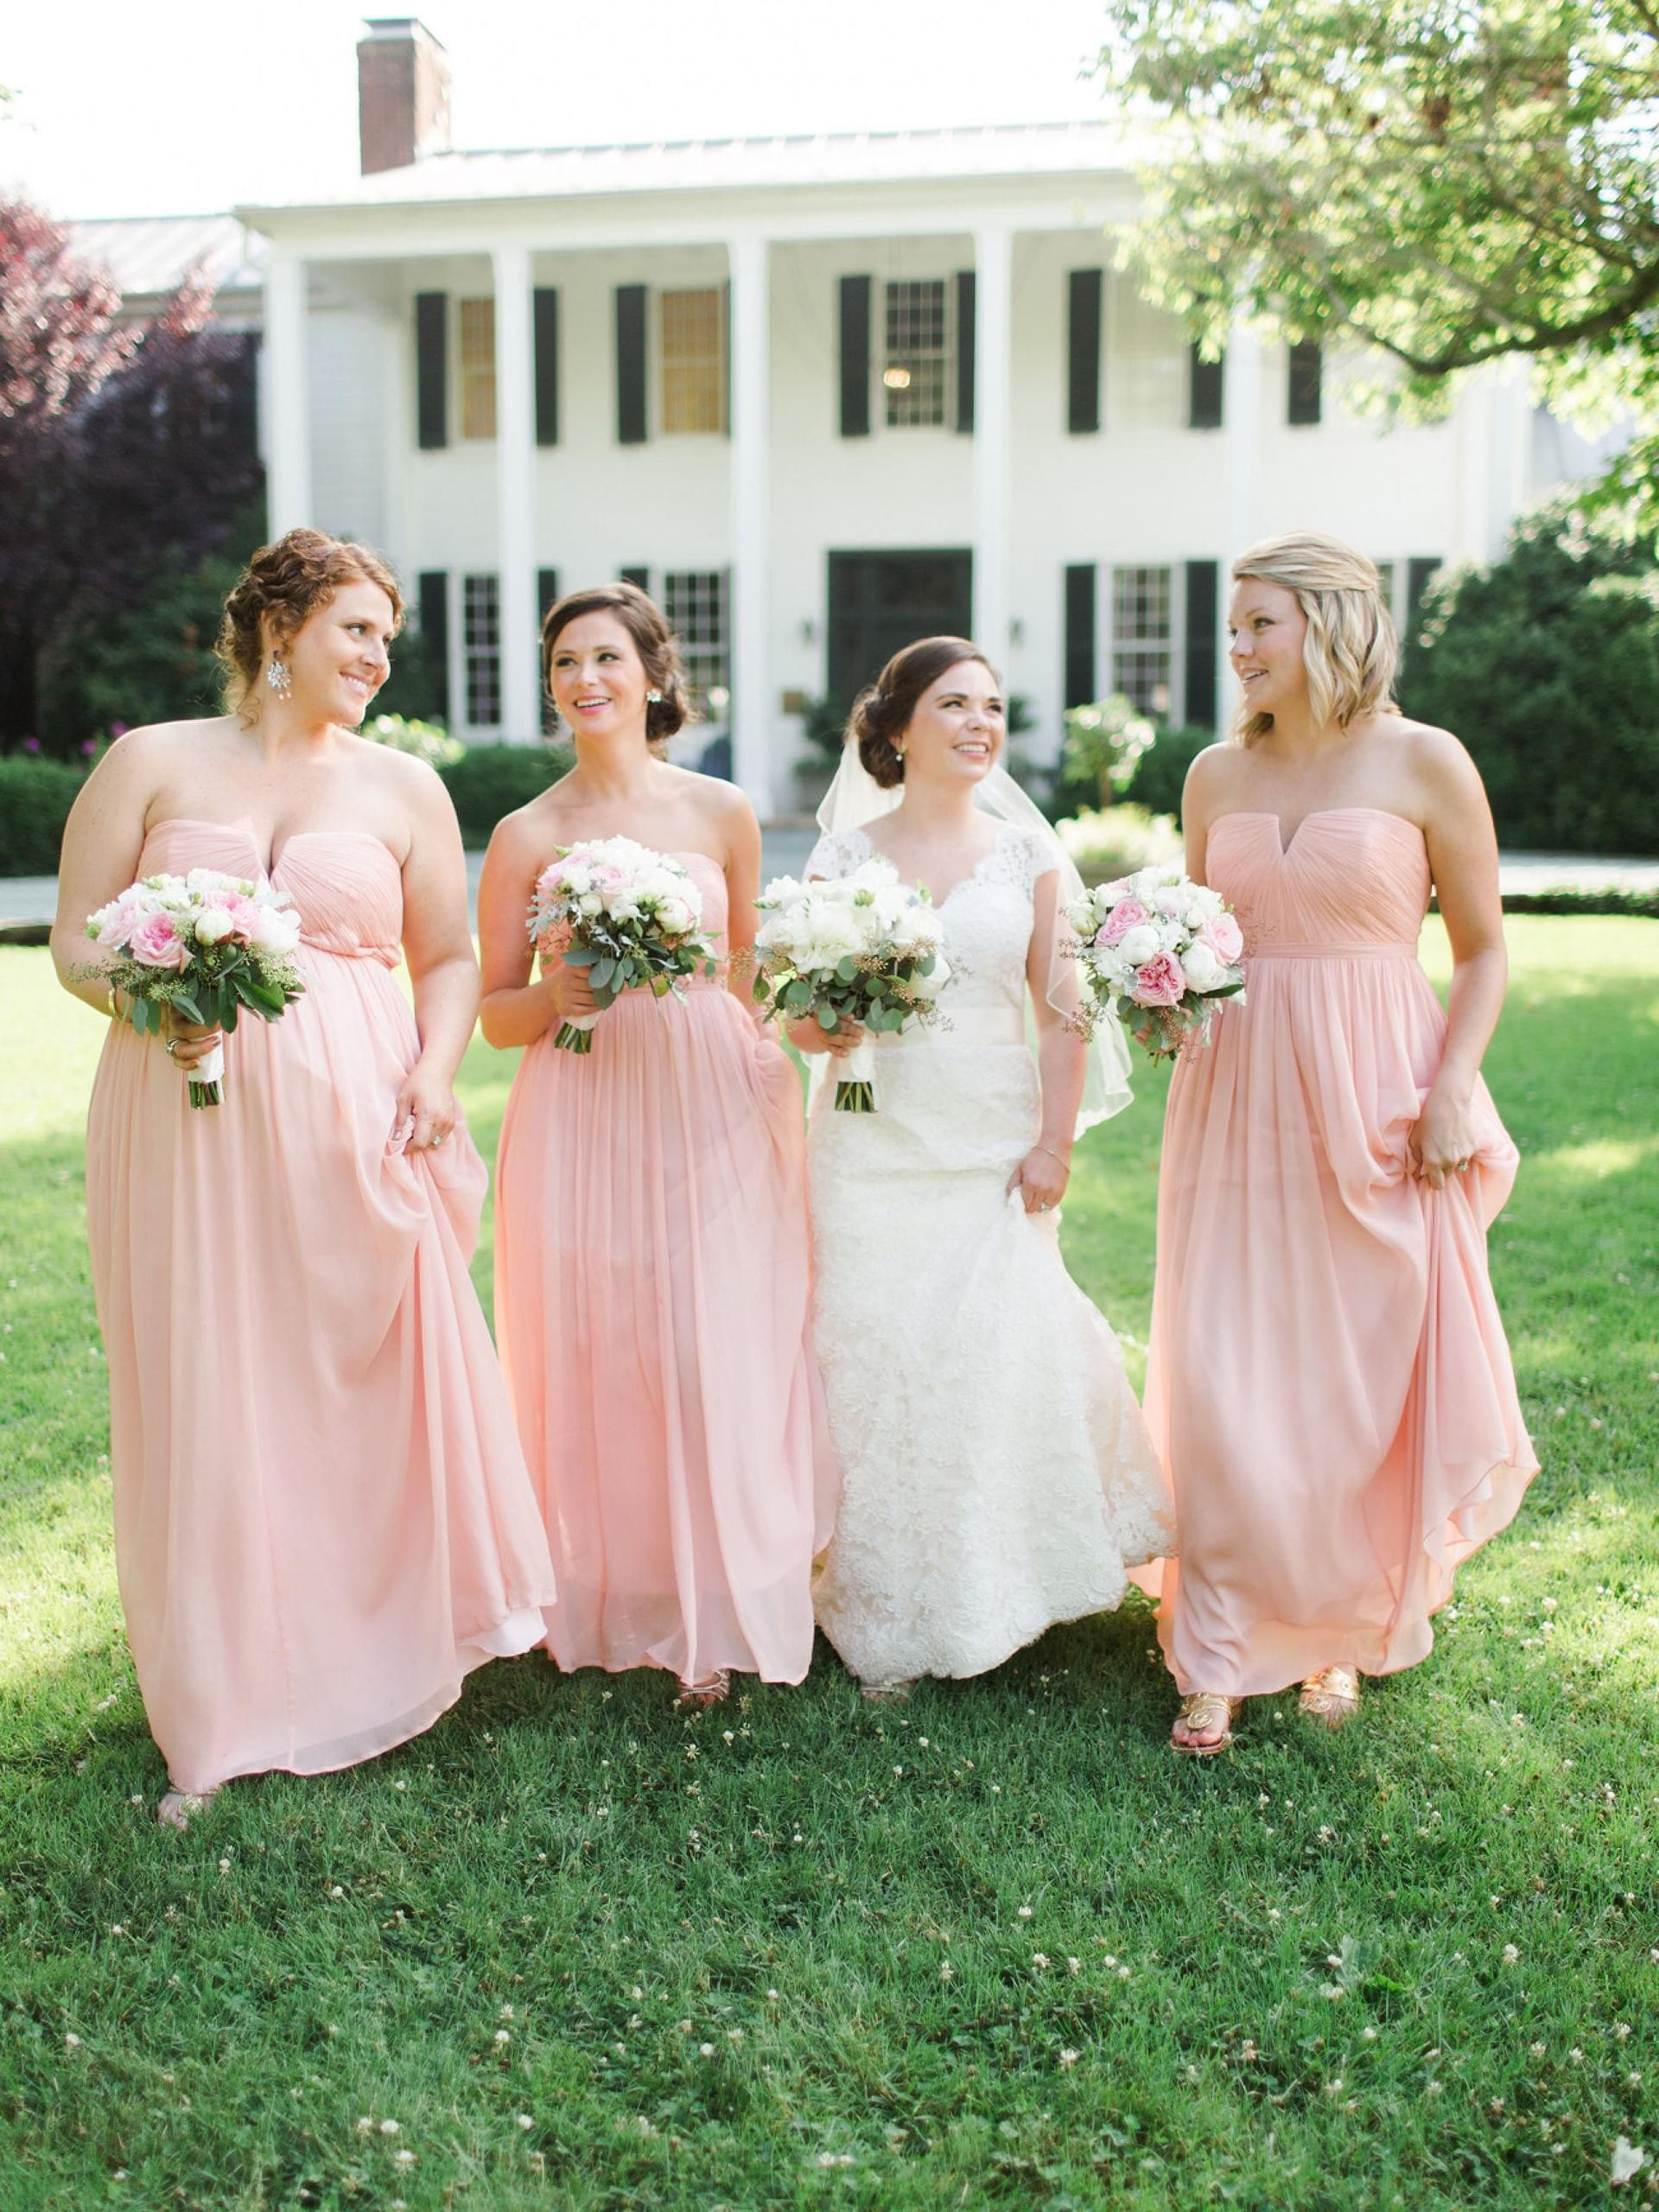 Blue ridge floral design afton va peach bridesmaid dresses blue ridge floral design afton va peach bridesmaid dresseslight ombrellifo Image collections